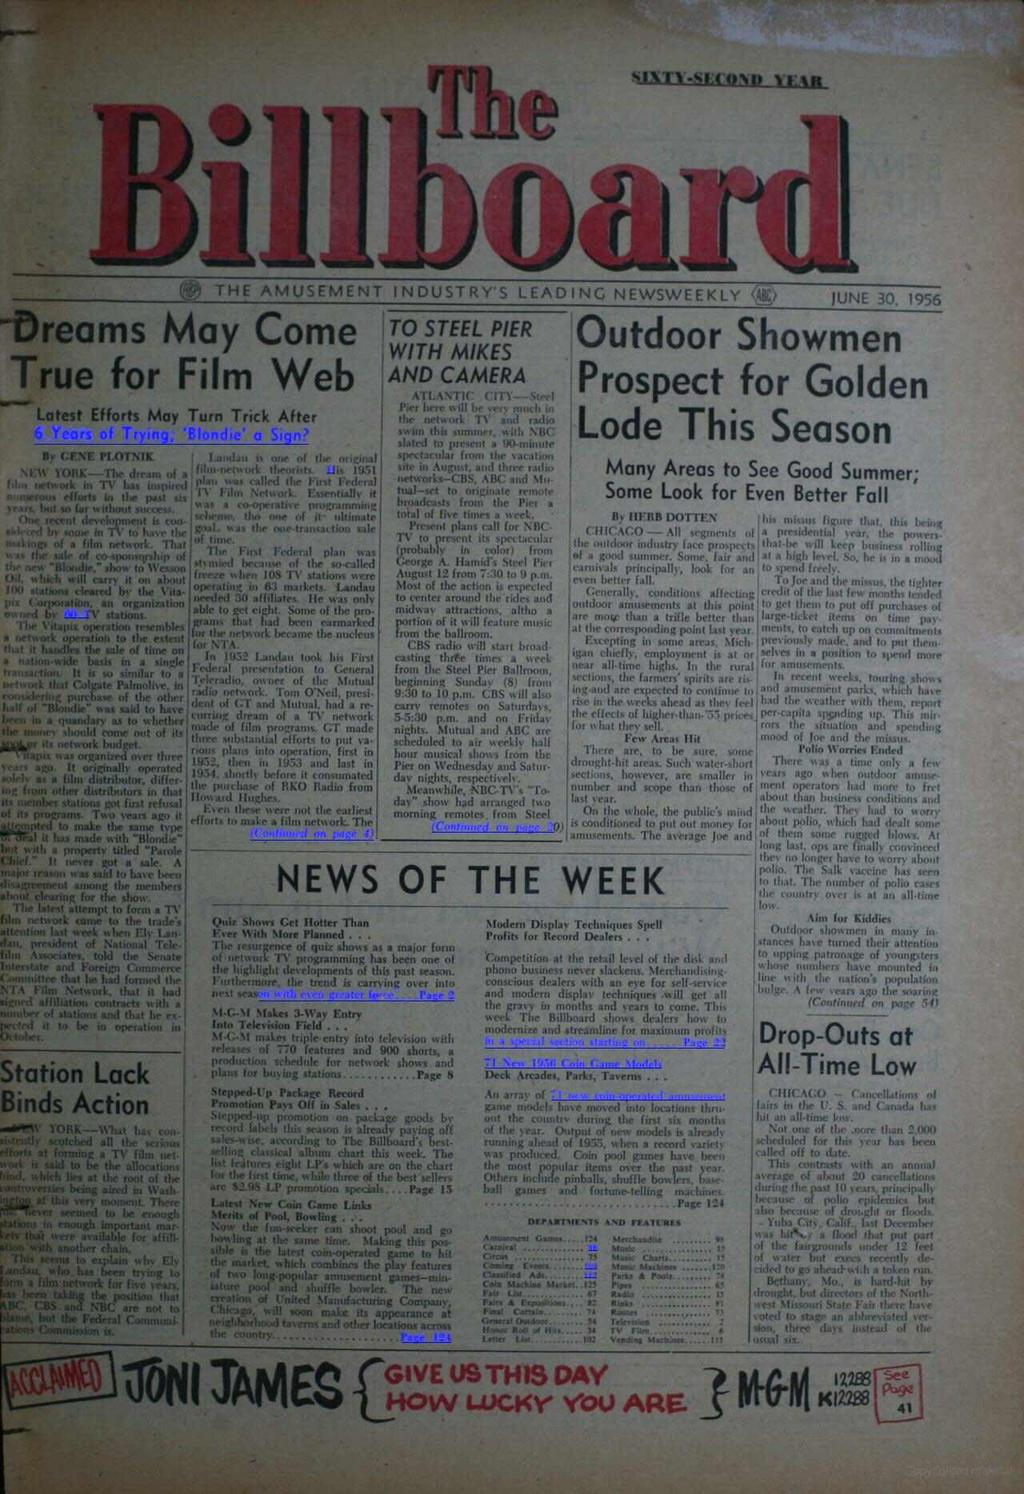 rirr www.americanradiohistory.com op THE AMUSEMENT NDUSTRY'S LEADNG NEWSWEEKLY 4BC> JUNE 30.